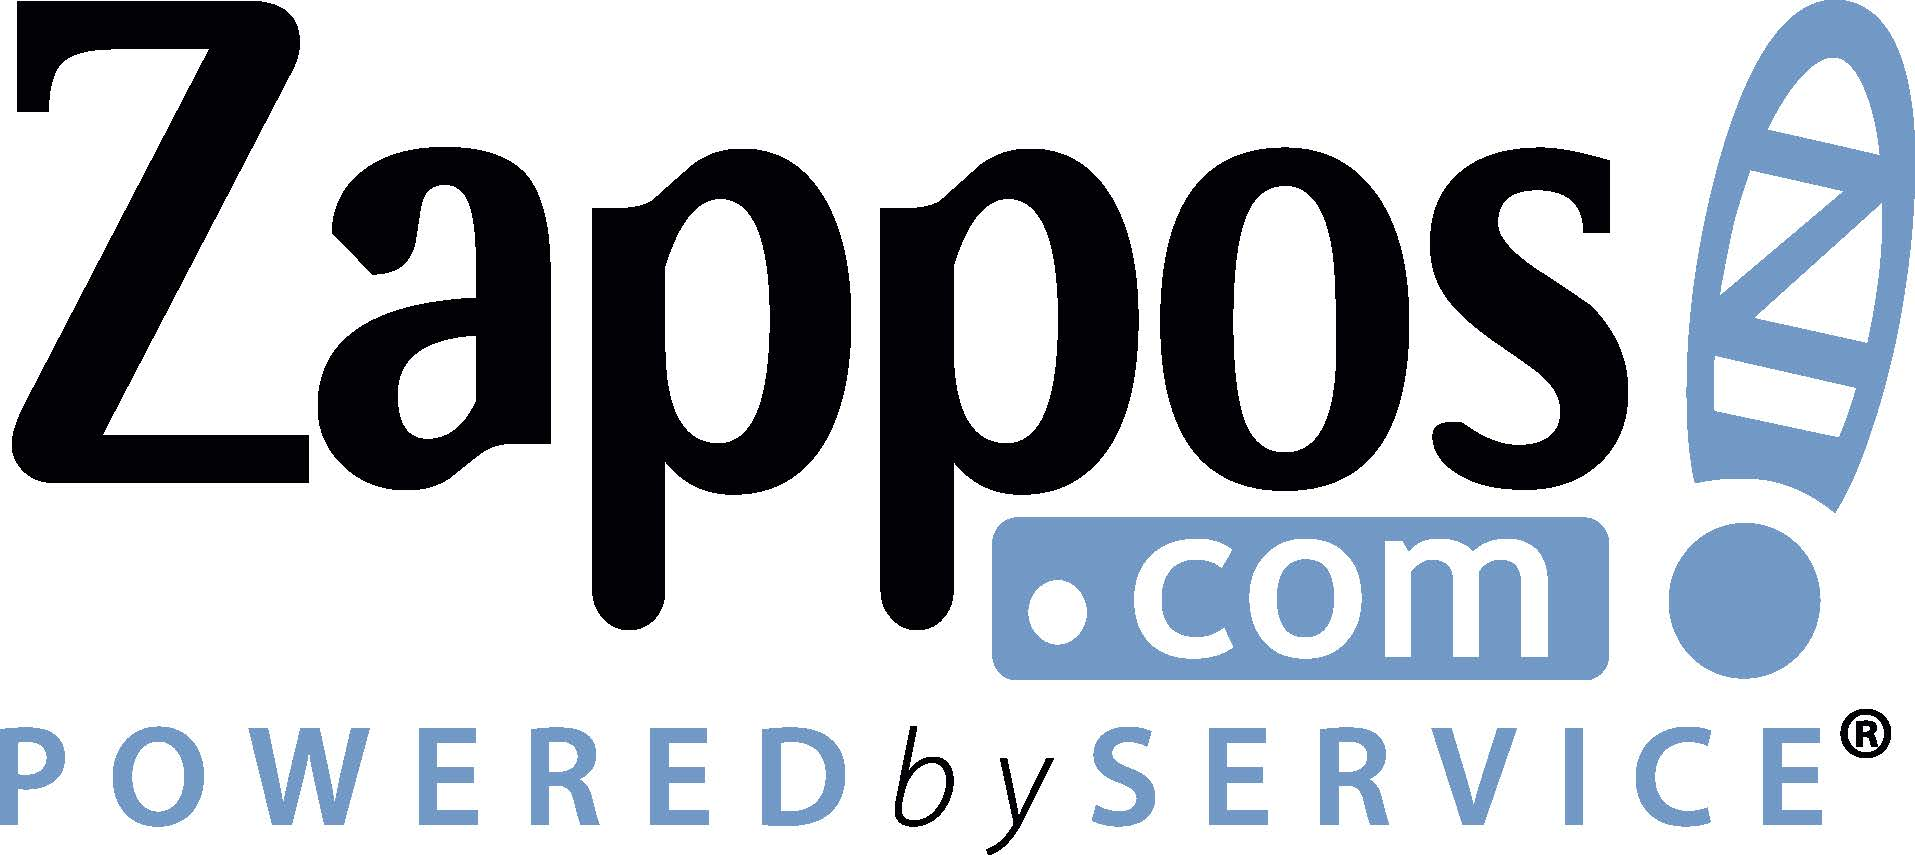 Zappos Powered by Service Circle R Logo in JPG format (00049262xB00EE) (1).jpg